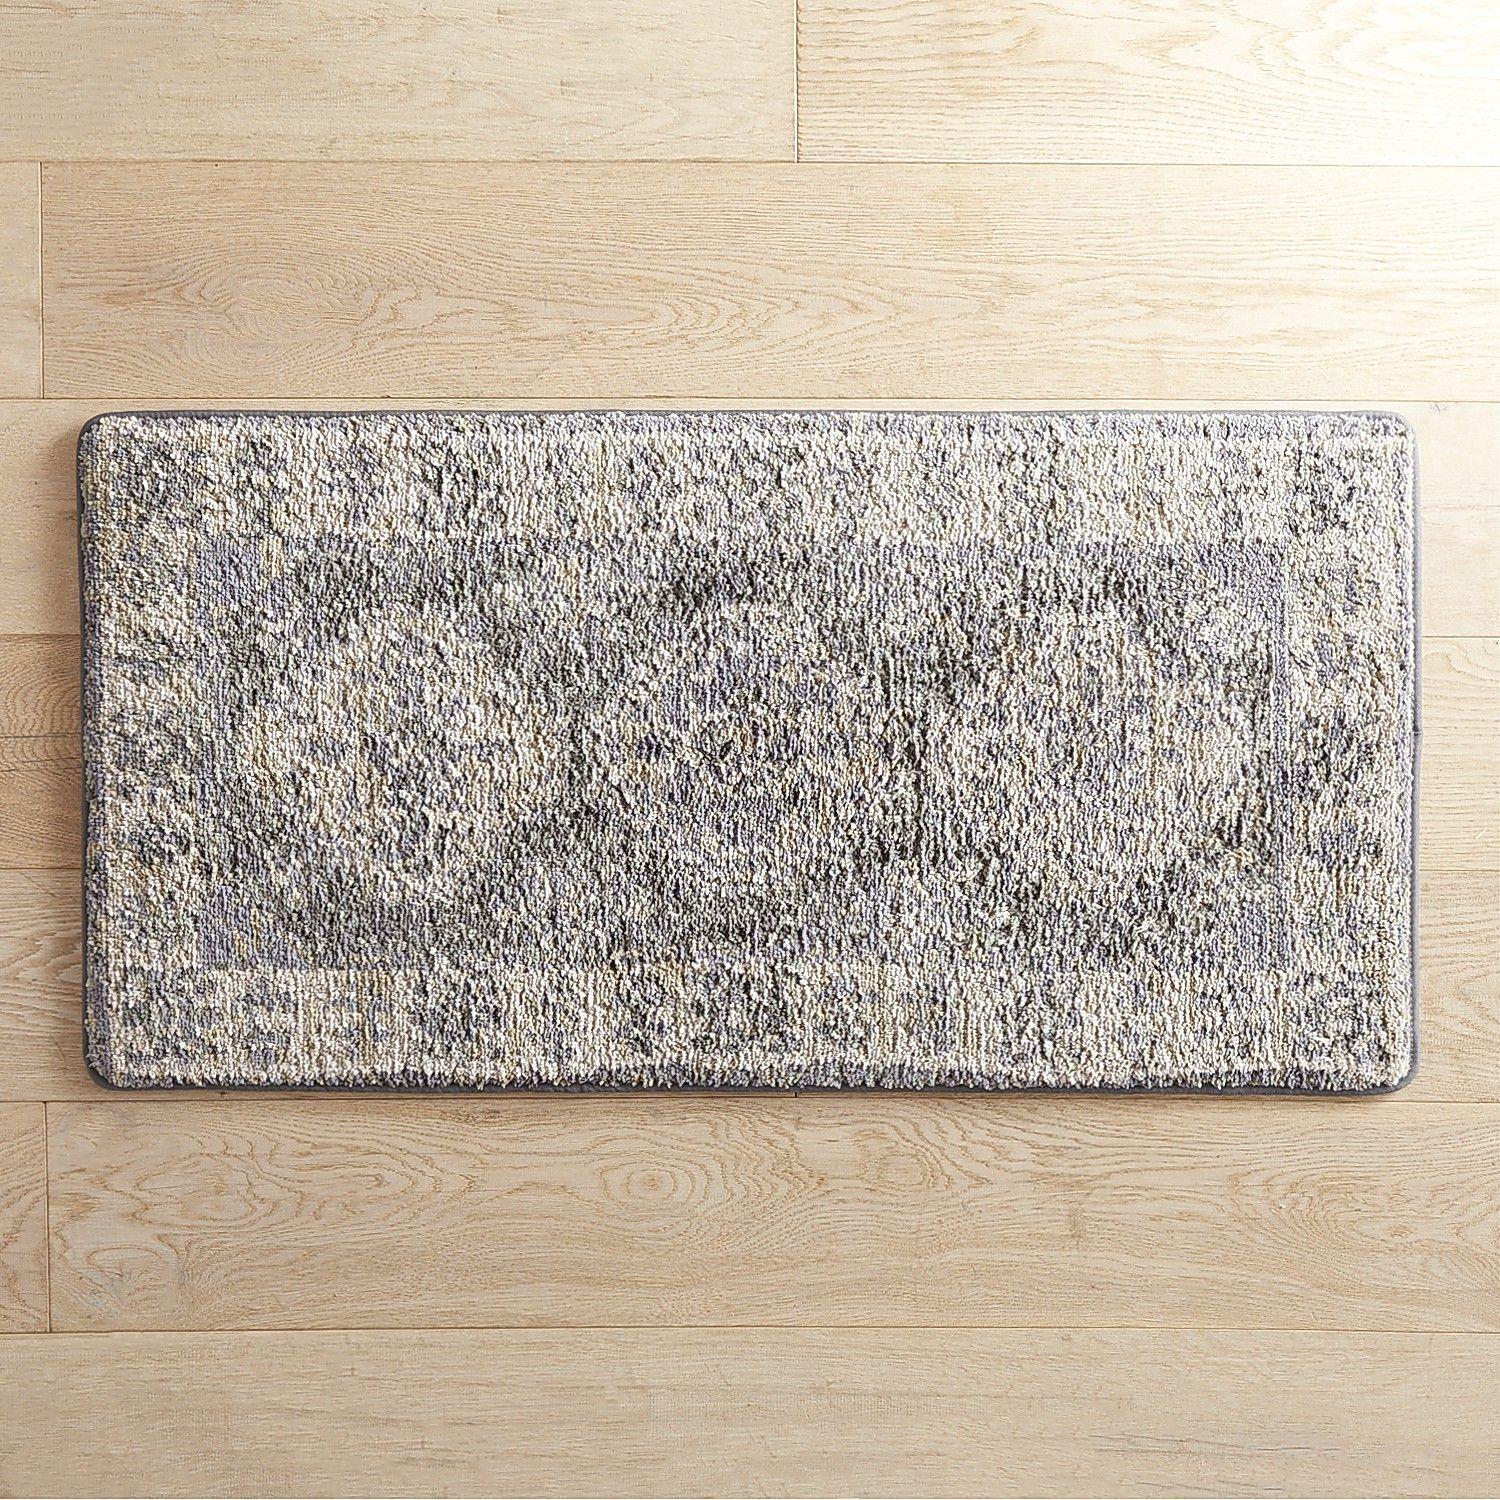 sink leather memory sets runners sale rugs home runner bath kitchen beyond and for cheap pad rug tables kohls goods mat on area marshalls foam washable stores coffee